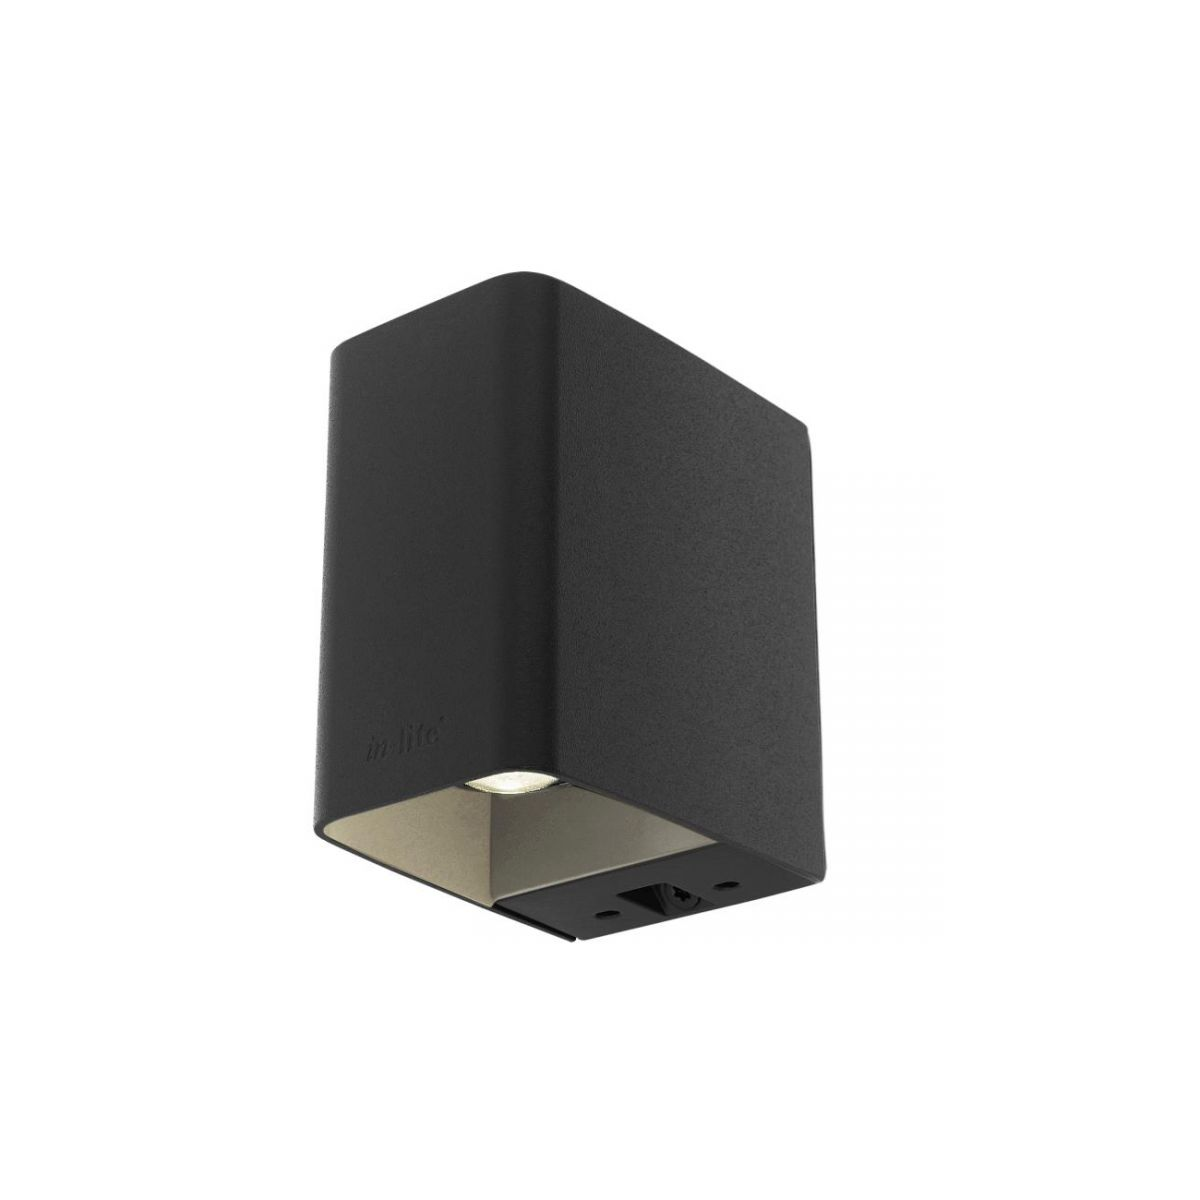 in-lite Ace Dark Wall Down Light.1